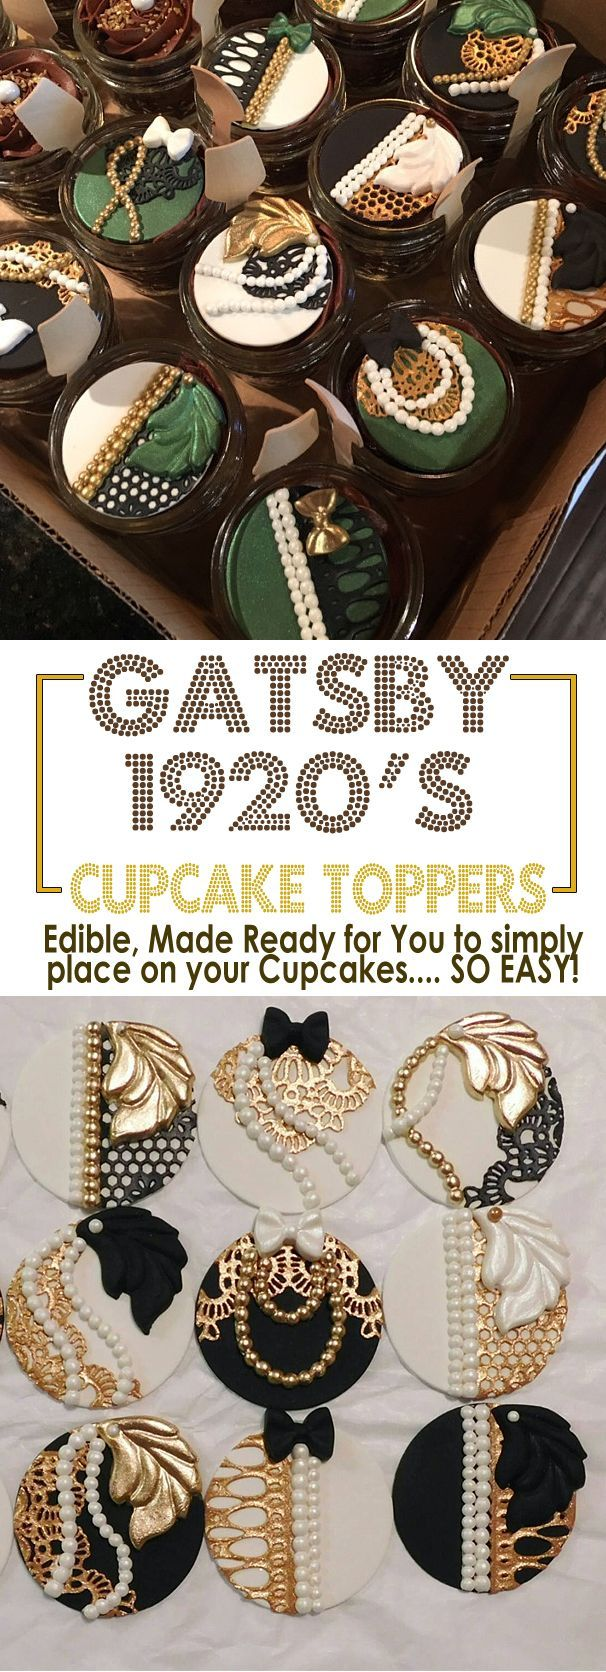 Great Gatsby Cupcake Toppers. You supply the required date and they are made and delivered, ready for you to place on top of your own recipe cupcakes. If you are great at the cupcakes, but no artist on the decorating, then these are for you and your Gatsby Party. Roaring 20's event. #gatsbyparty #cupcakes #recipes #gatsby #cupcaketoppings #cupcaketoppers #art #affiliatelink #party #havingaparty